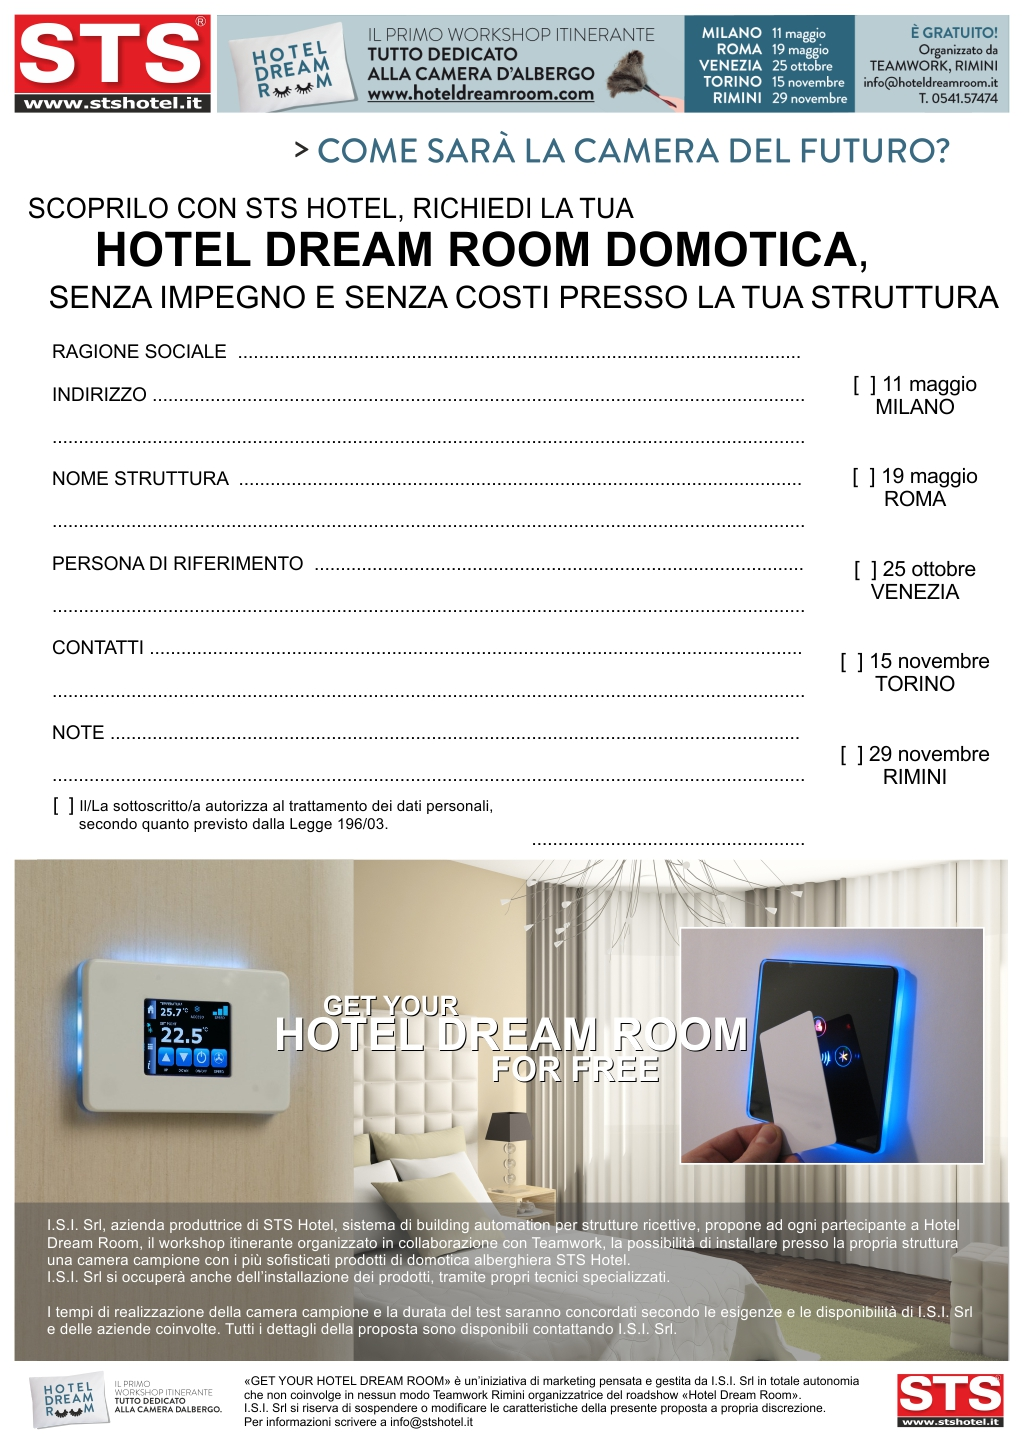 GET YOUR hotel dream room FOR FREE